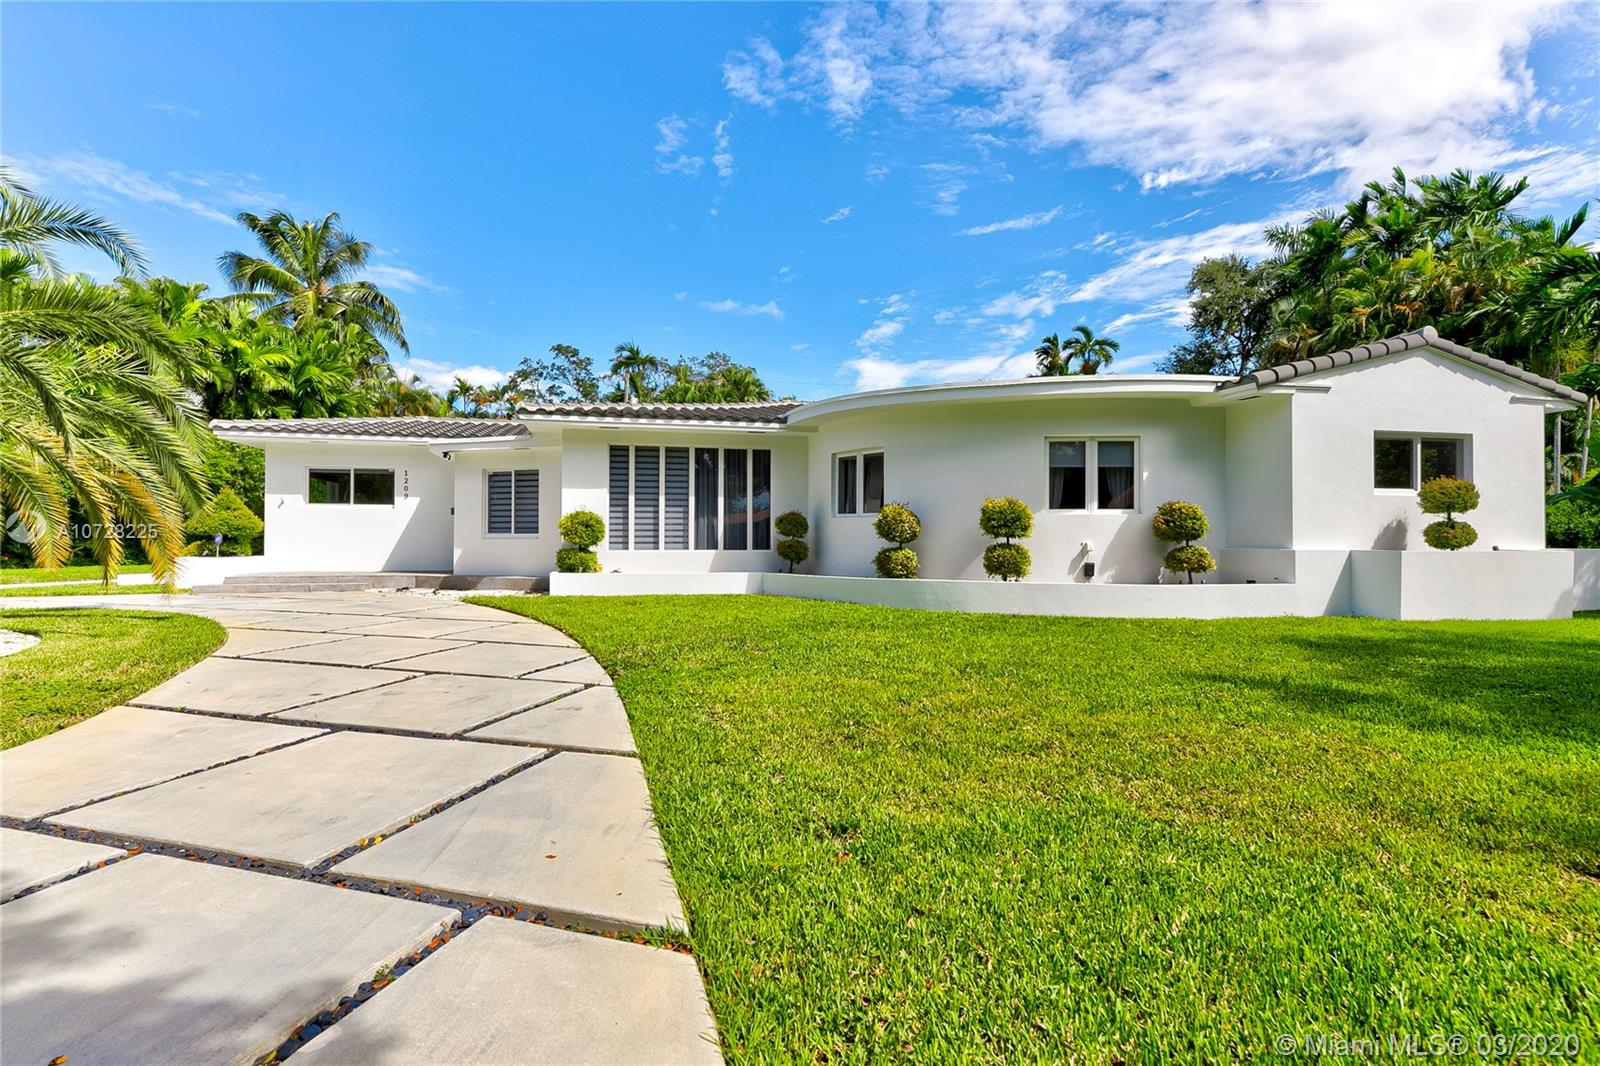 Miami Shores - 1209 NE 98th St, Miami Shores, FL 33138